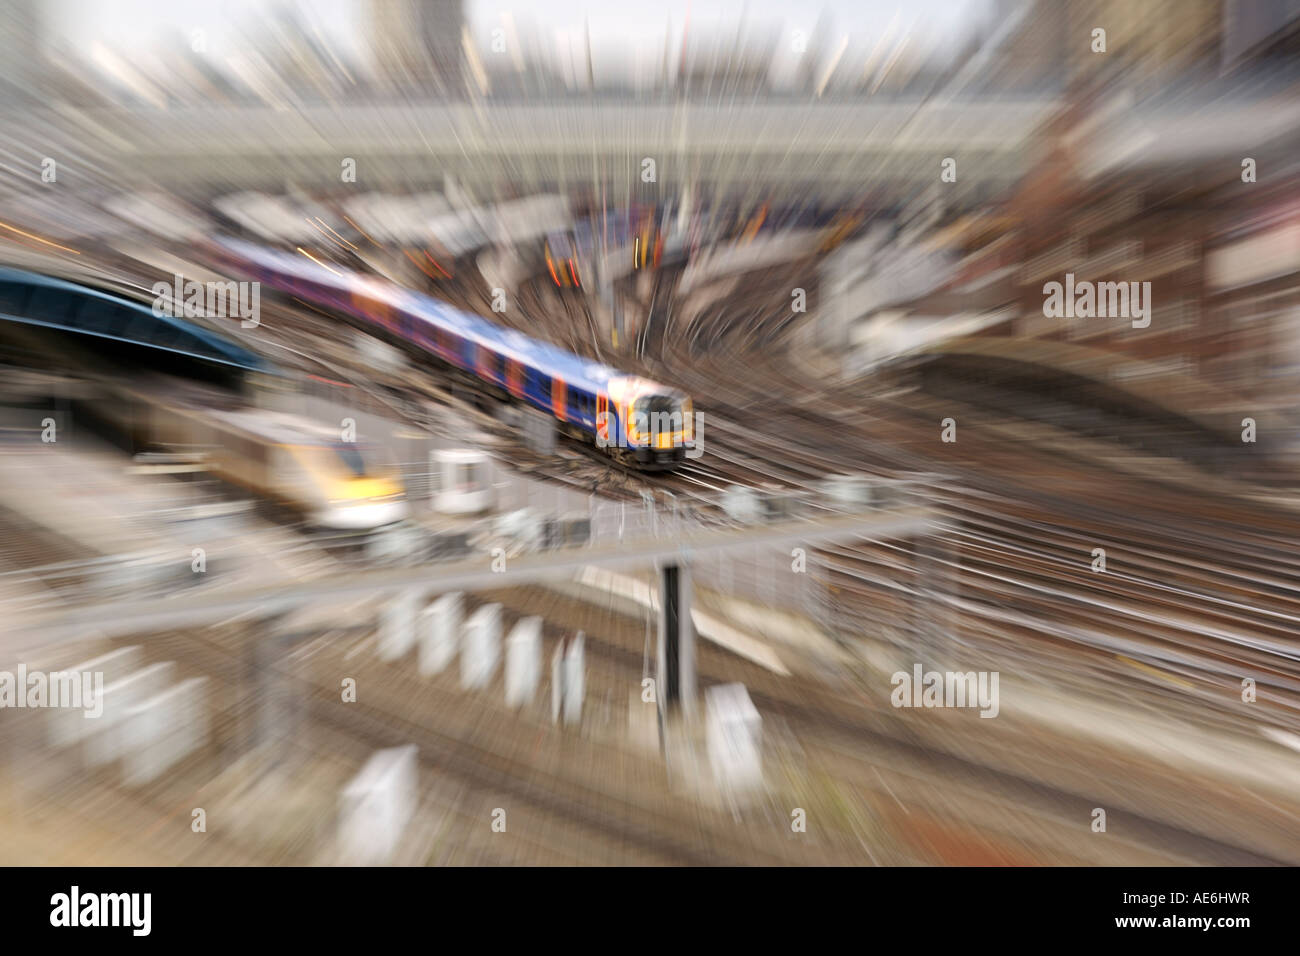 Zoom-blurred view of trains leaving London's Waterloo train station. - Stock Image